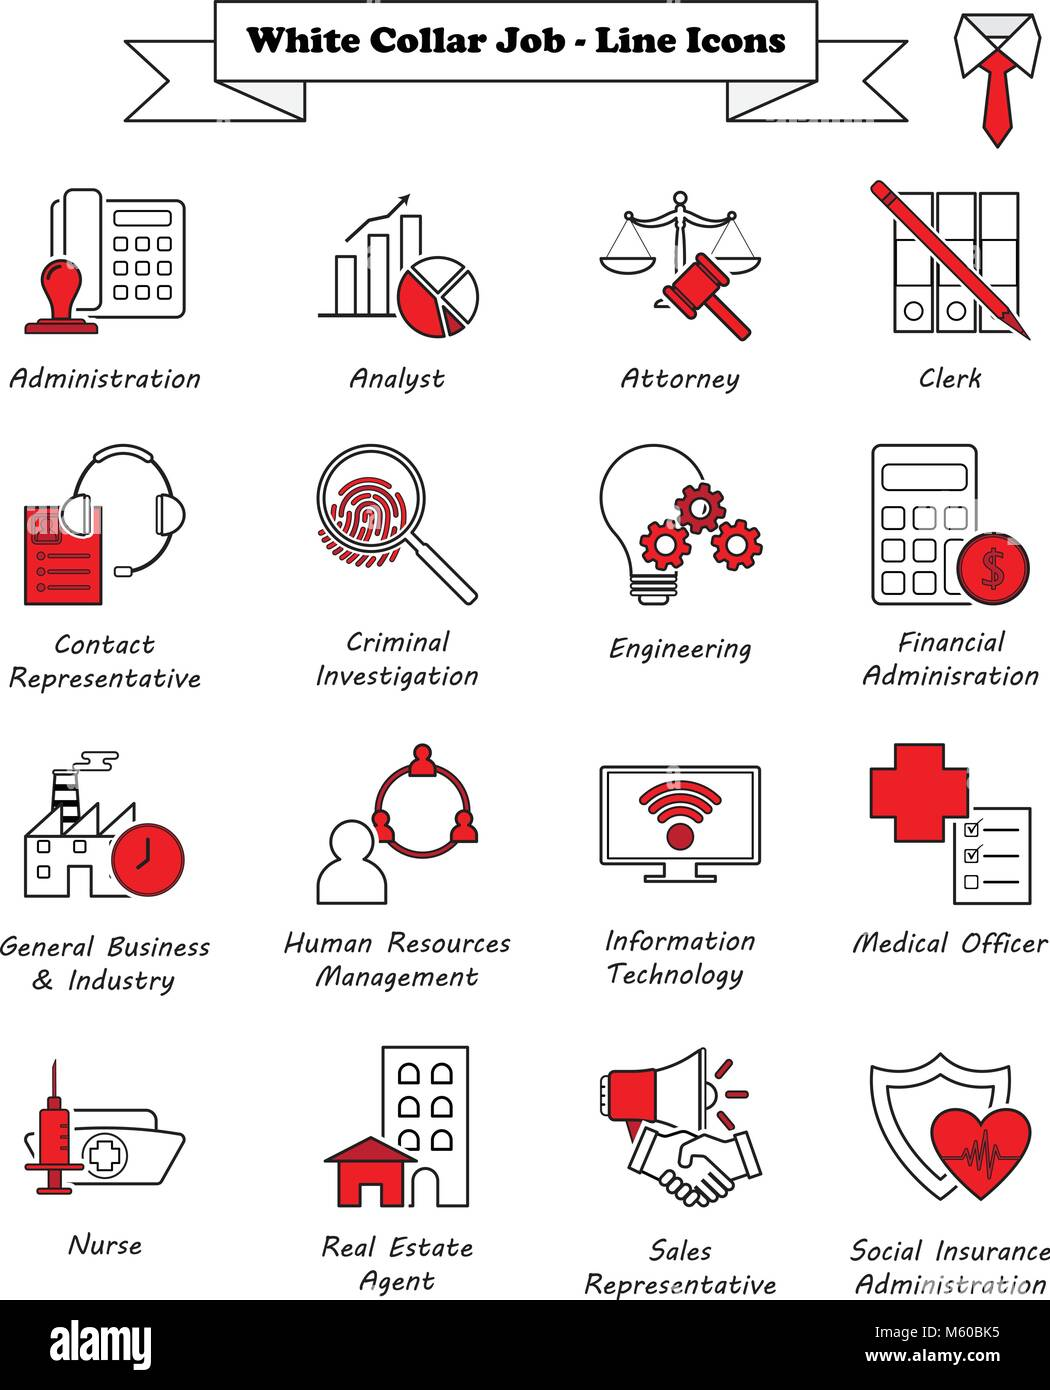 Vector Illustration Ready-To-Use 16 White Collar Job - Line Icons Designed as Multiple Professions Involved In Professional, Stock Vector